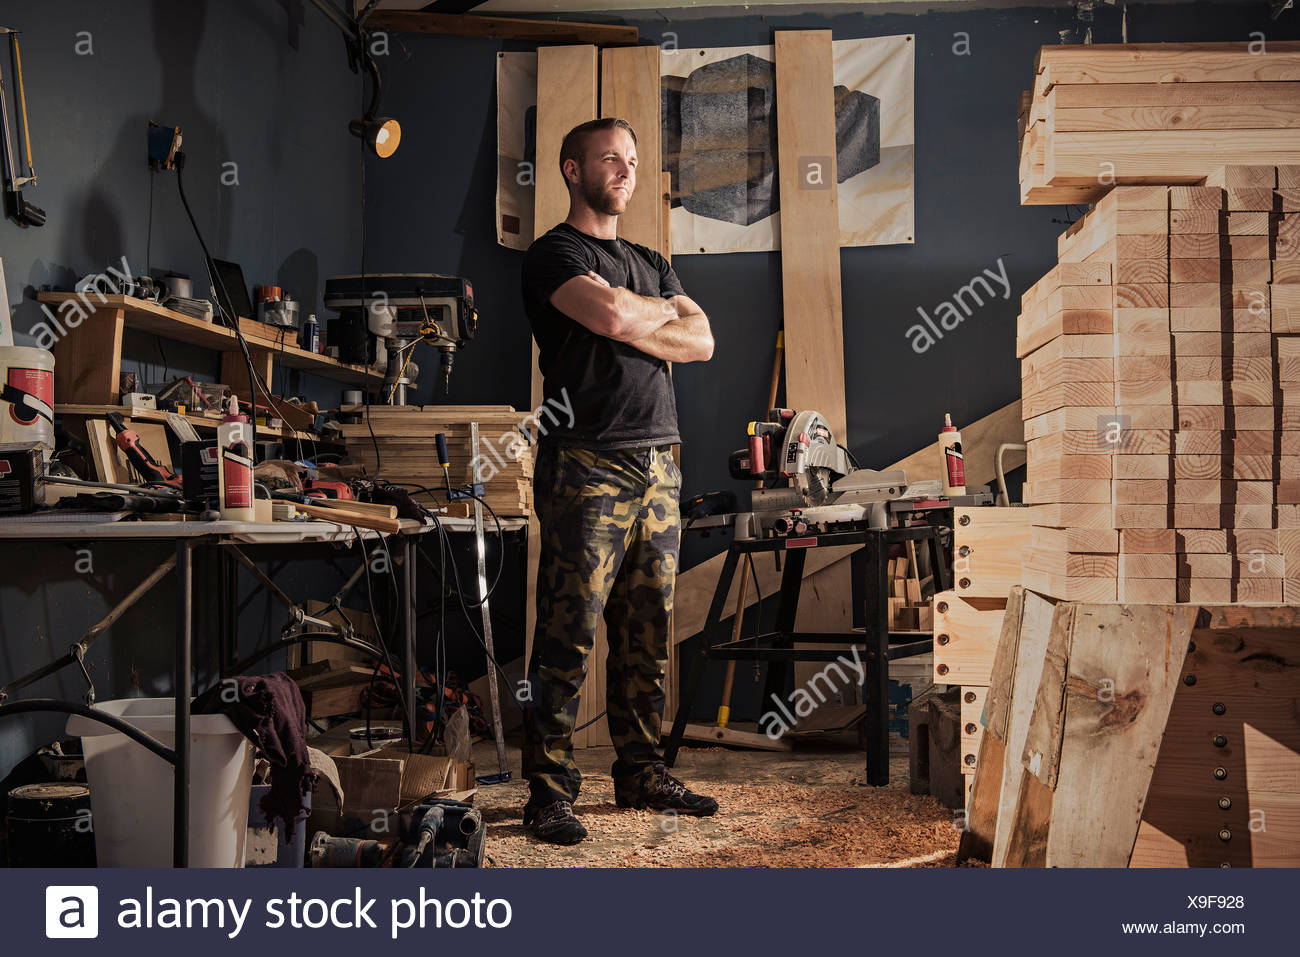 Portrait of mid adult man en atelier de charpentier Photo Stock